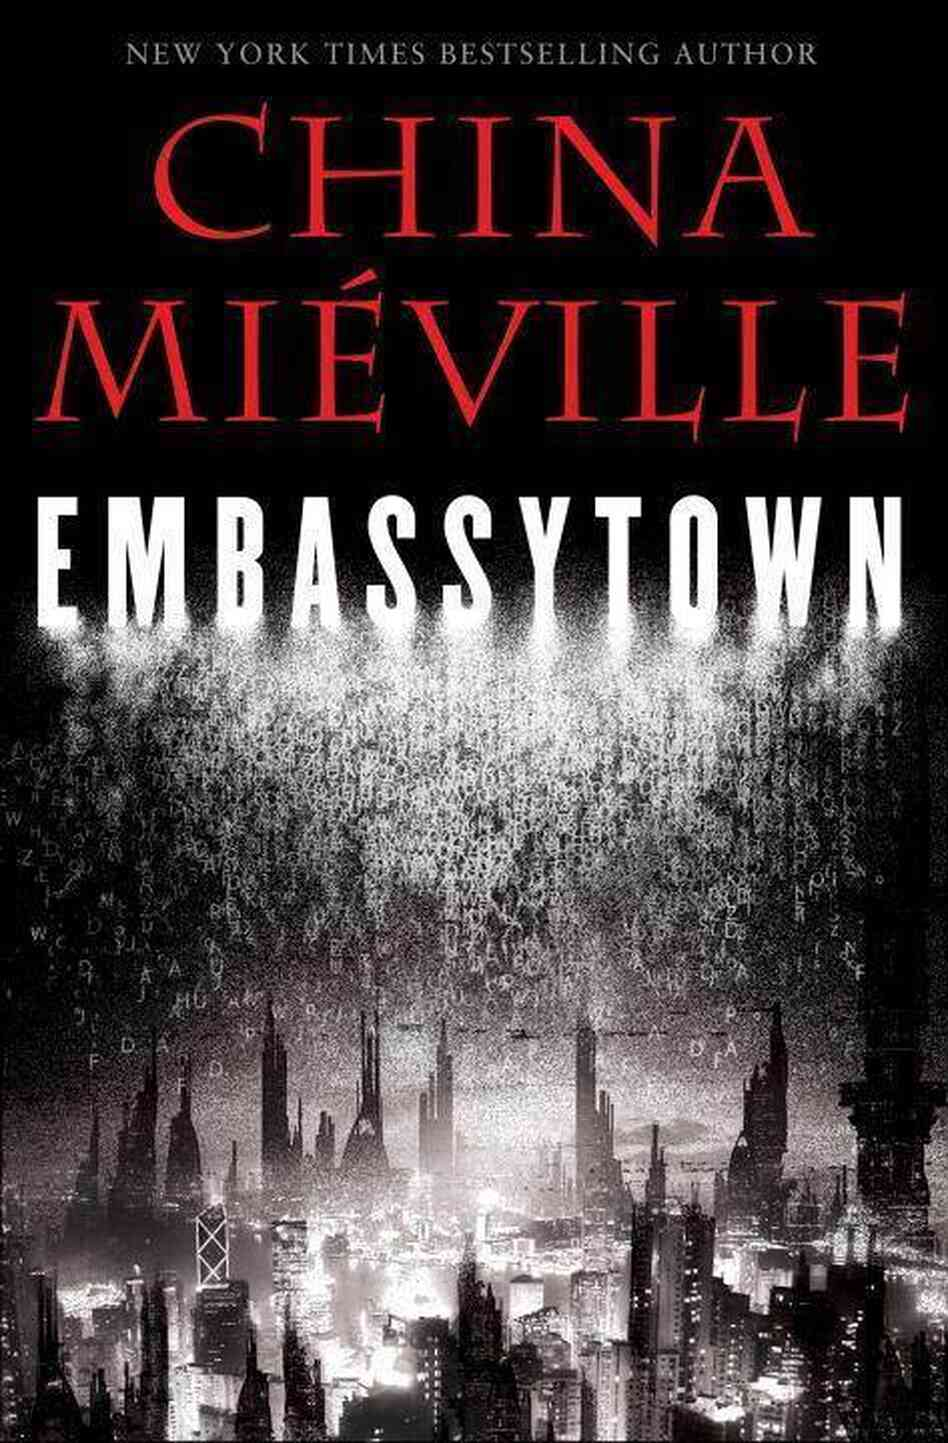 Embassytown by China Mieville